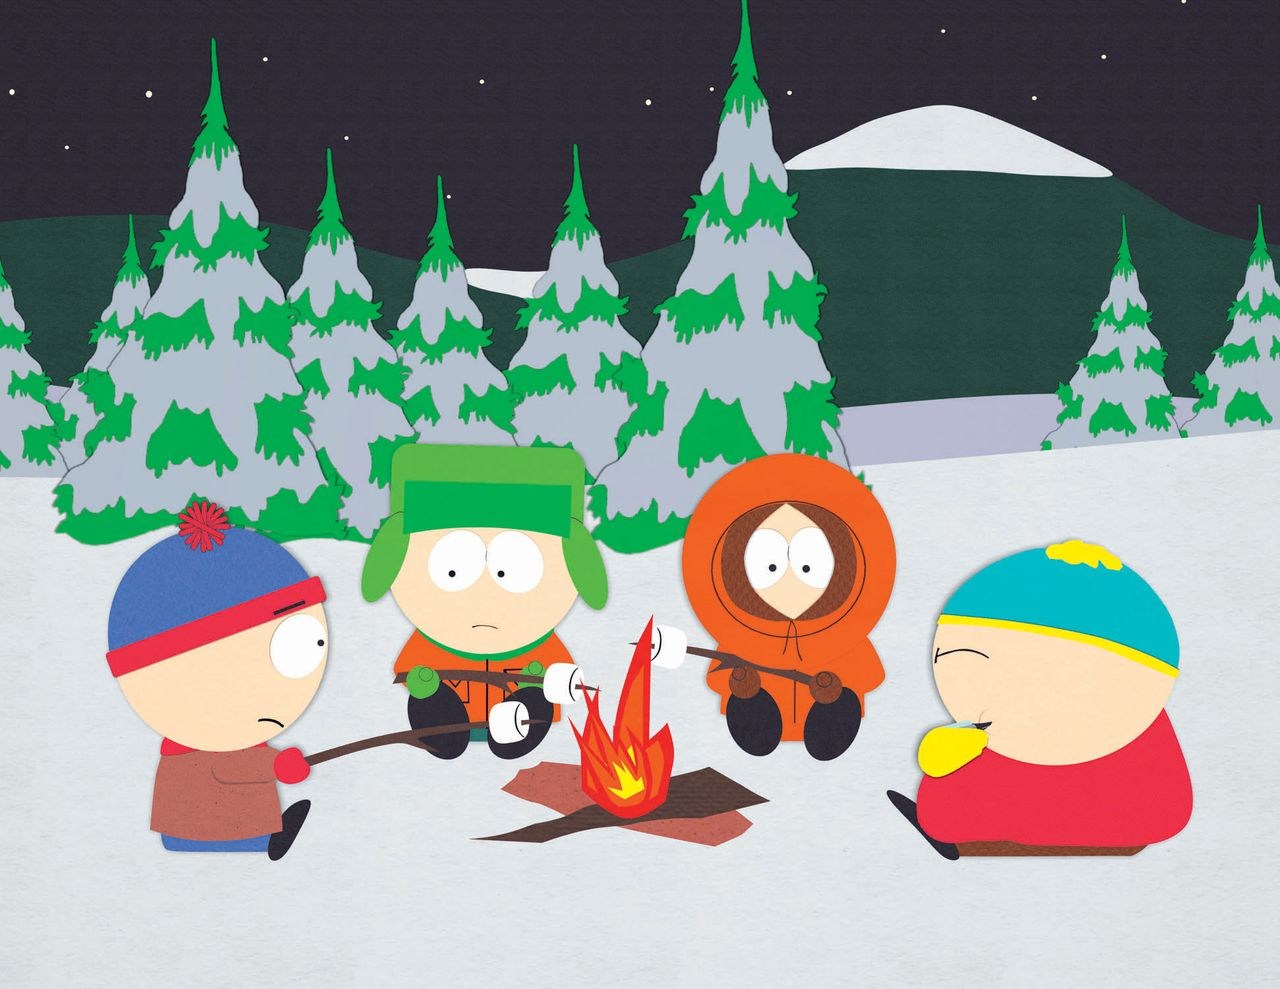 """This animated image released by Comedy Central shows a scene from """"South Park."""" BitTorrent Inc., developer of a popular online file-sharing tool, said Tuesday, Nov. 28, 2006, it has reached licensing deals that will boost the number of movies and TV shows it can offer as part of a video download service launching next year. Added to BitTorrent's lineup are films such as """"Mission: Impossible III,"""" and TV shows such as """"South Park."""" (AP Photo/Comedy Central)"""